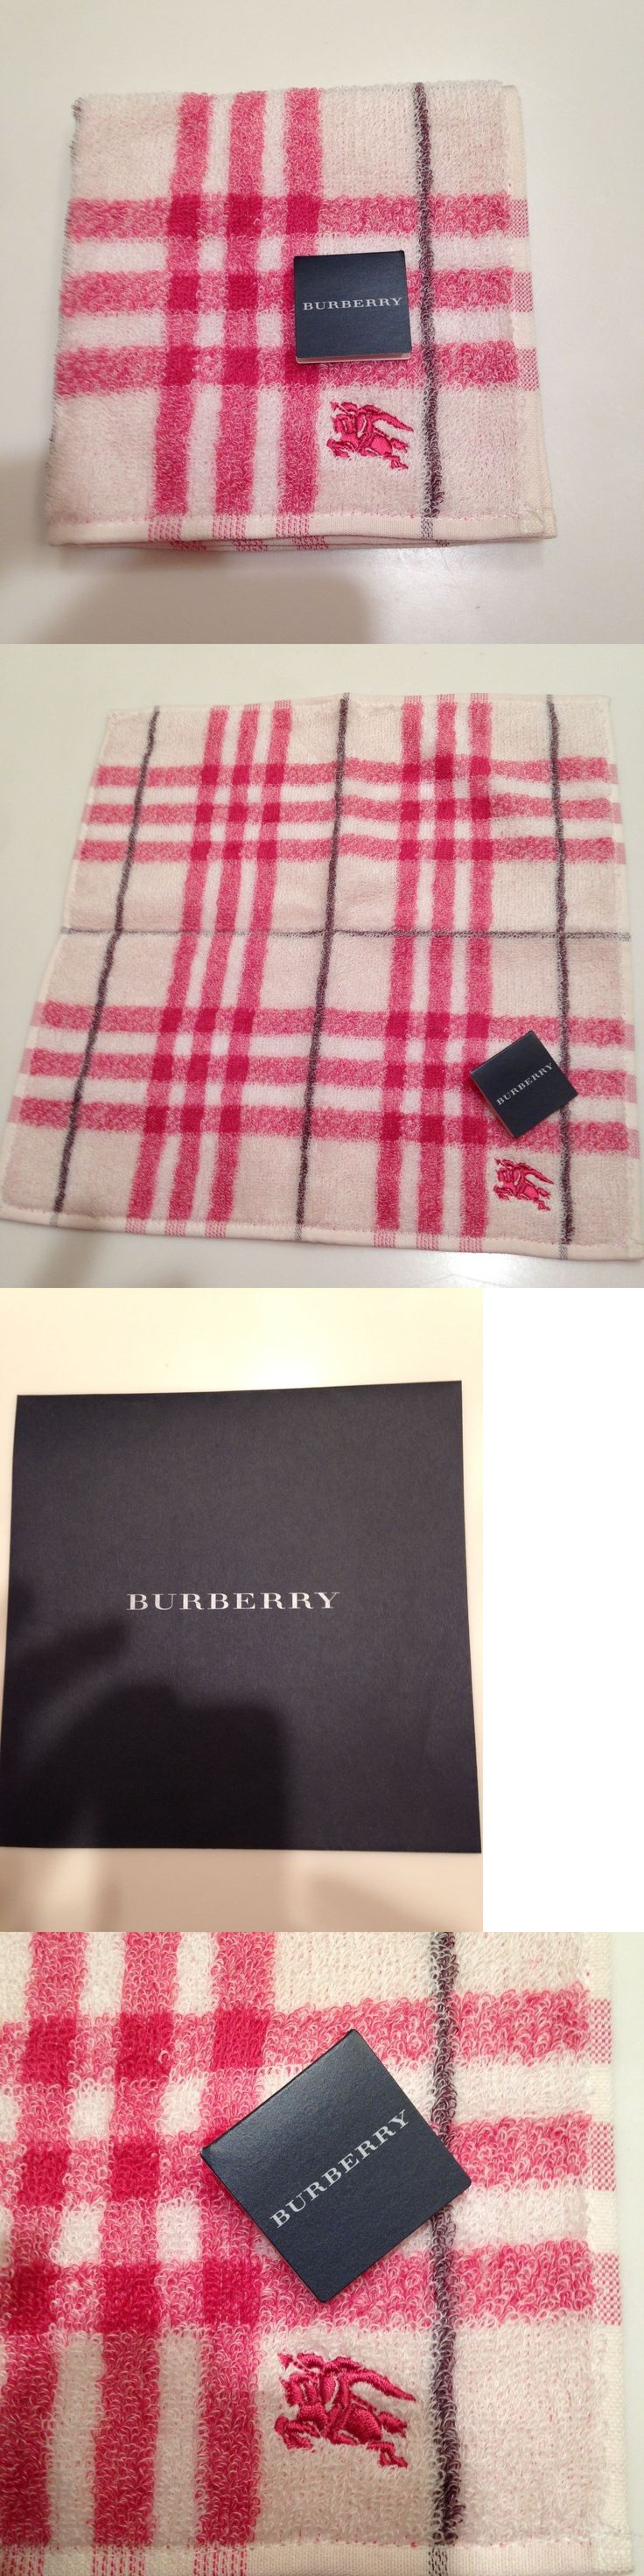 Handkerchiefs 167906: Nwt Authentic Burberry Purse Hand Towel, Pocket Towel, Baby Towel,Pink, White -> BUY IT NOW ONLY: $49.7 on eBay!